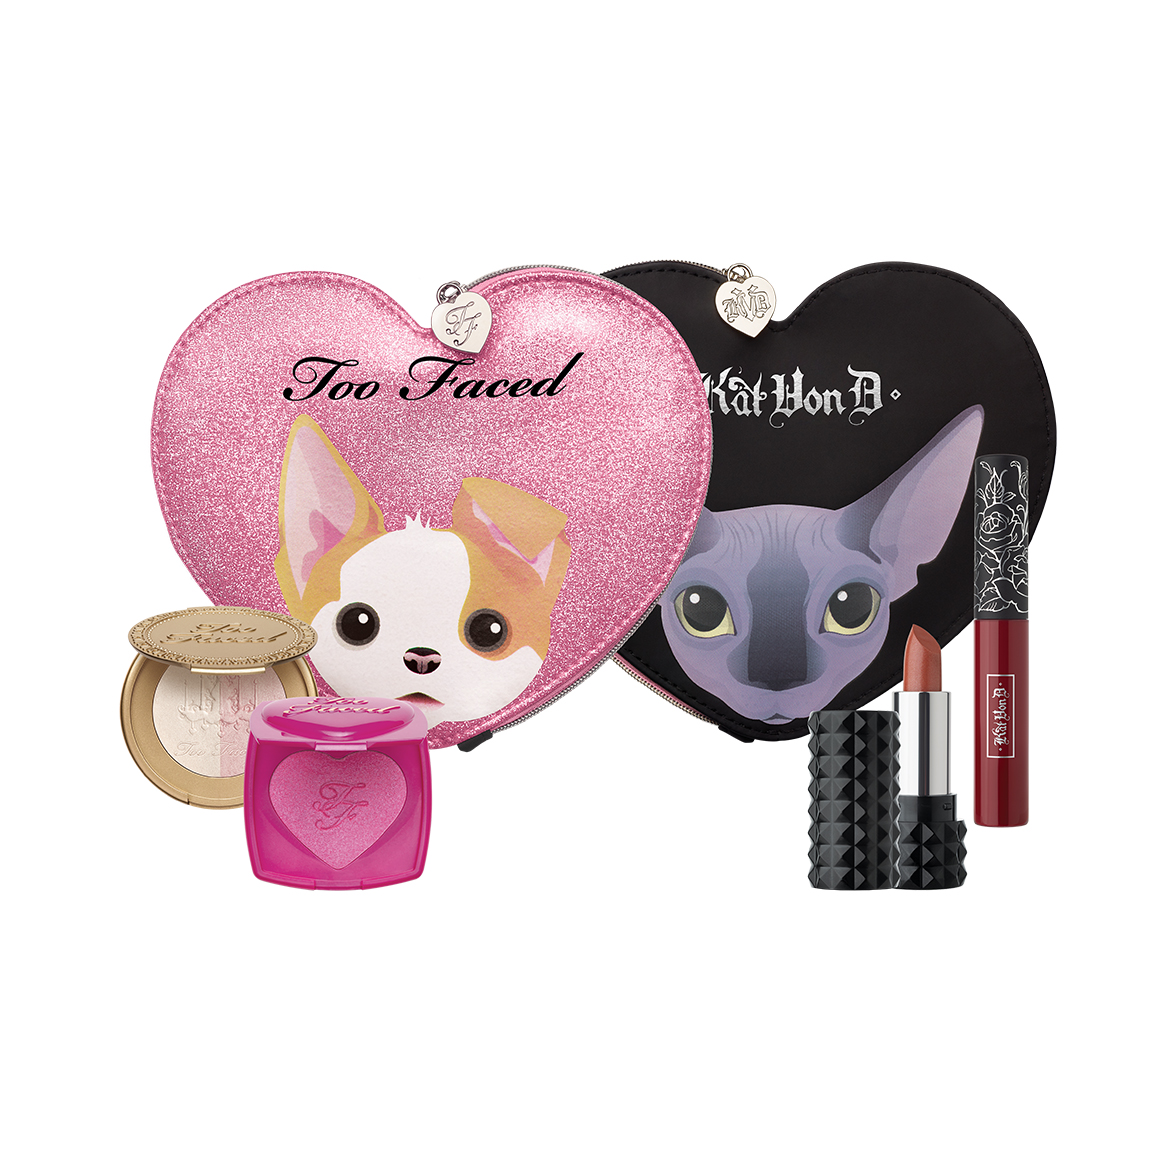 Kat Von D and Too Faced officially started the countdown to their collab with the cutest video